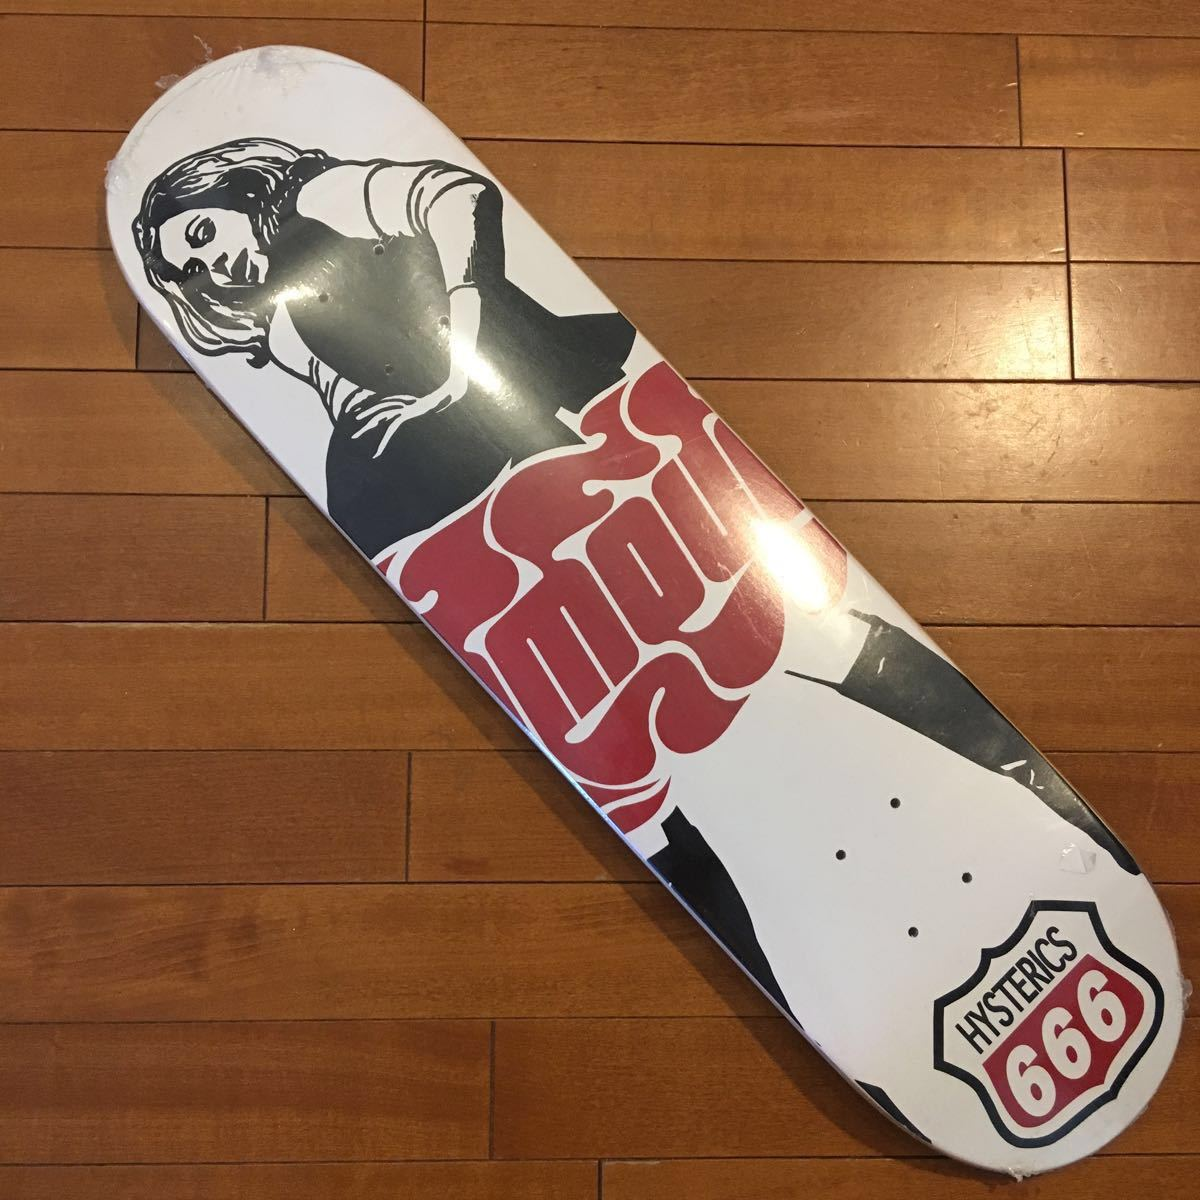 Hysteric glamour Skateboard ① ヒステリックグラマー スケートボード スケボー 新品未使用